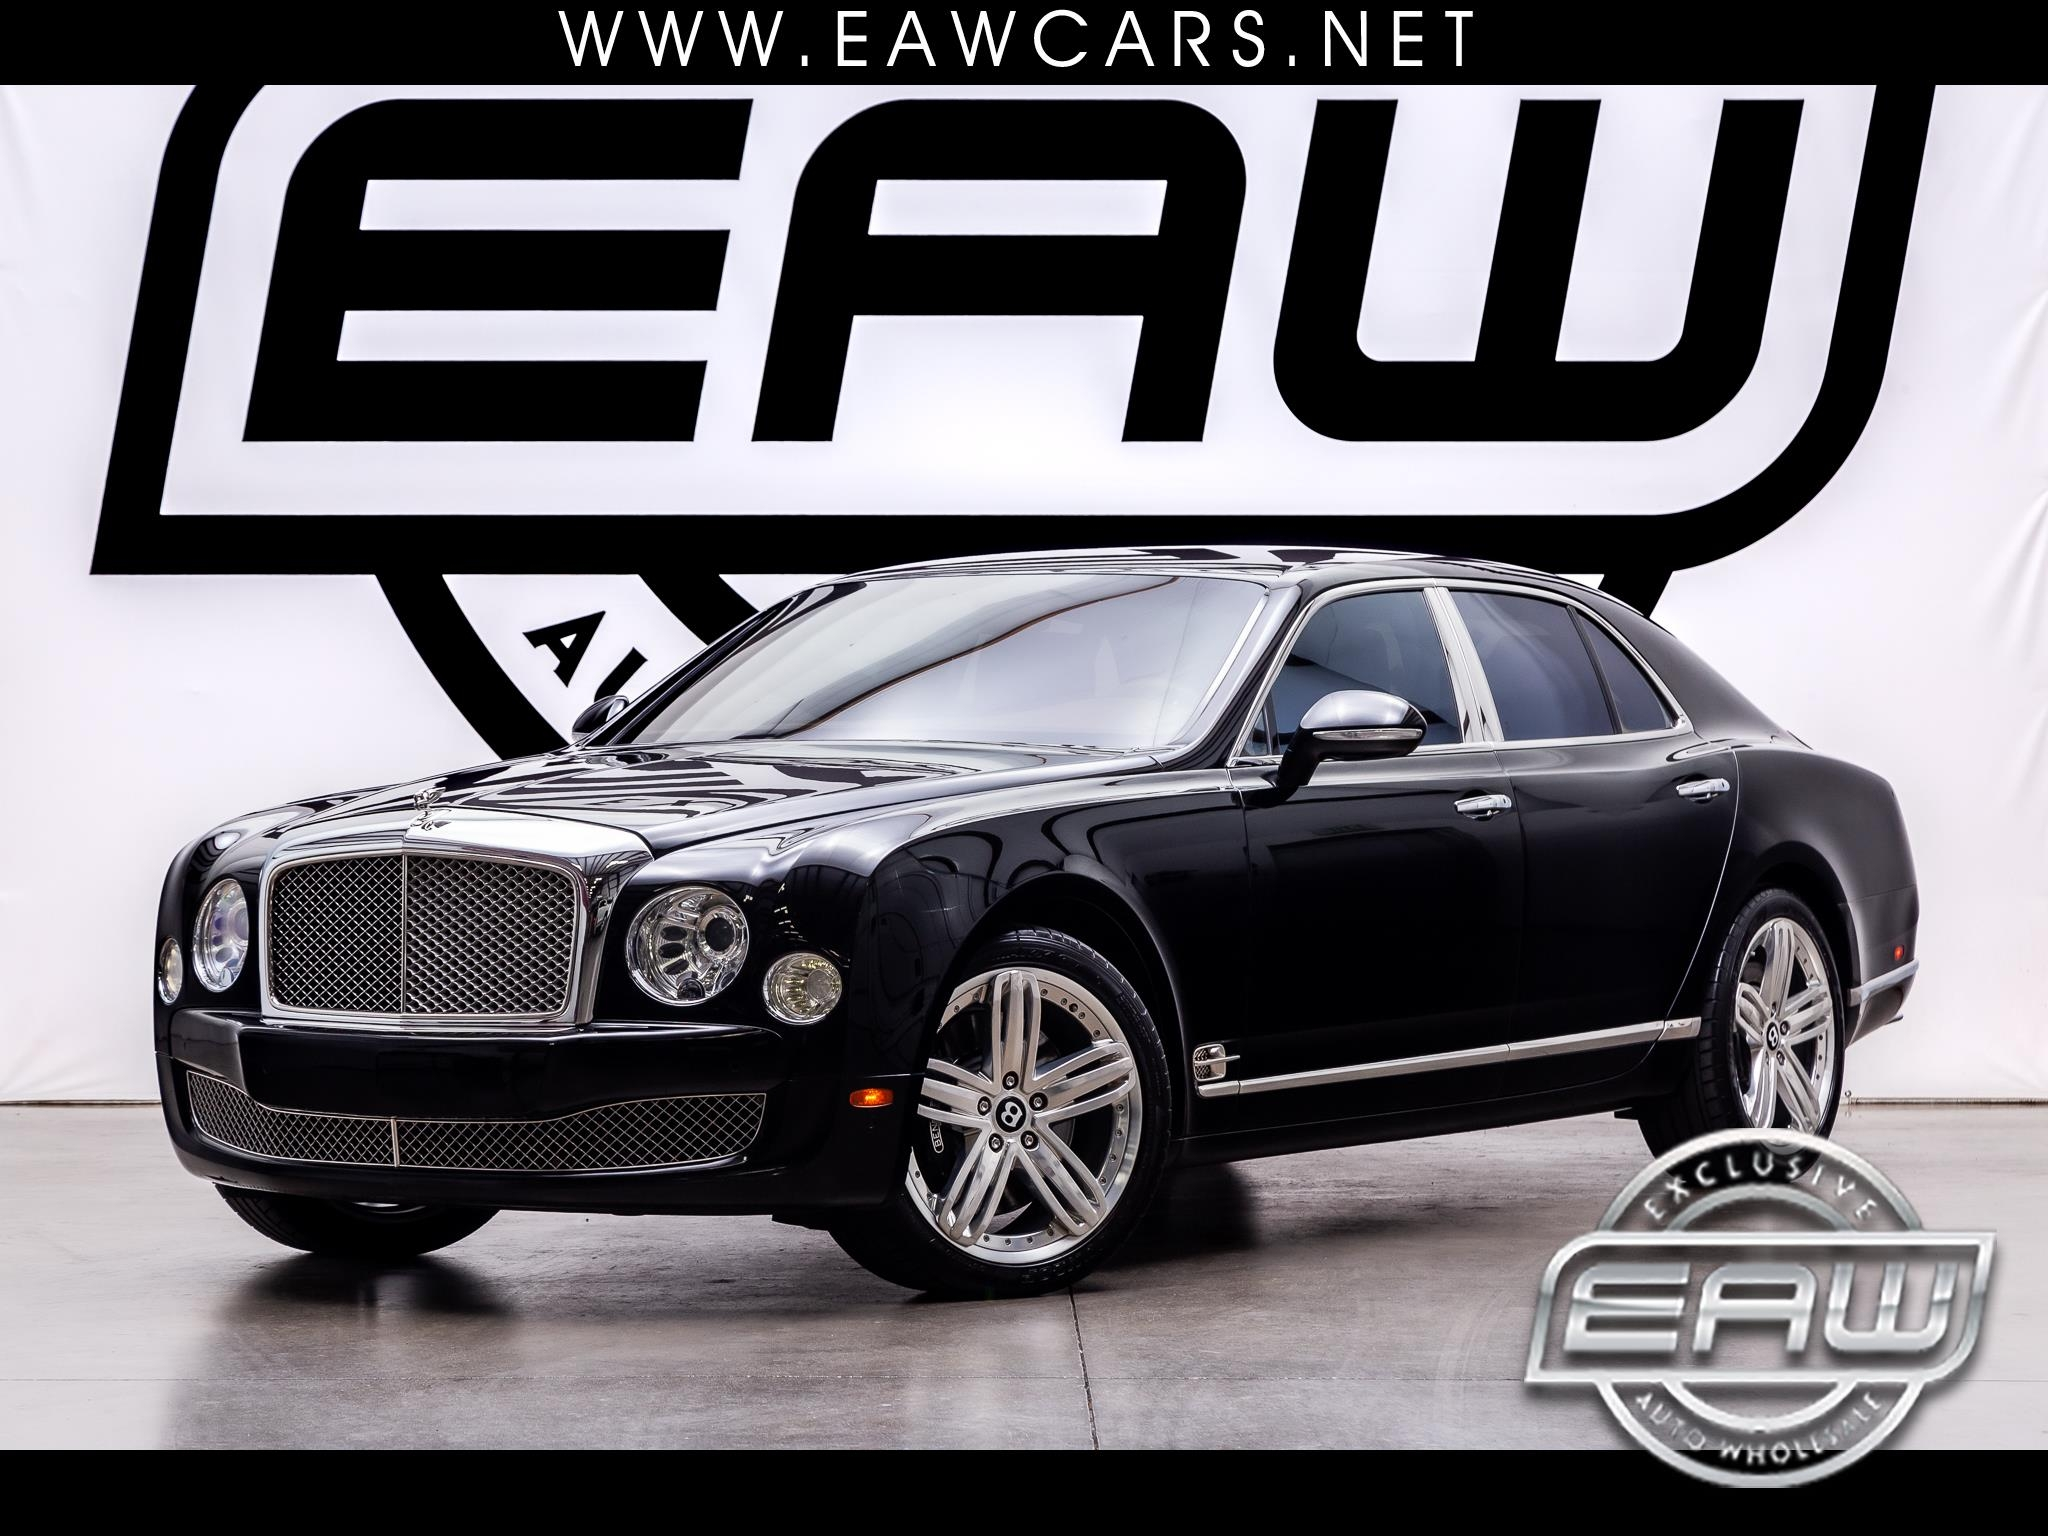 Bentley Mulsanne 4dr Sdn 2012